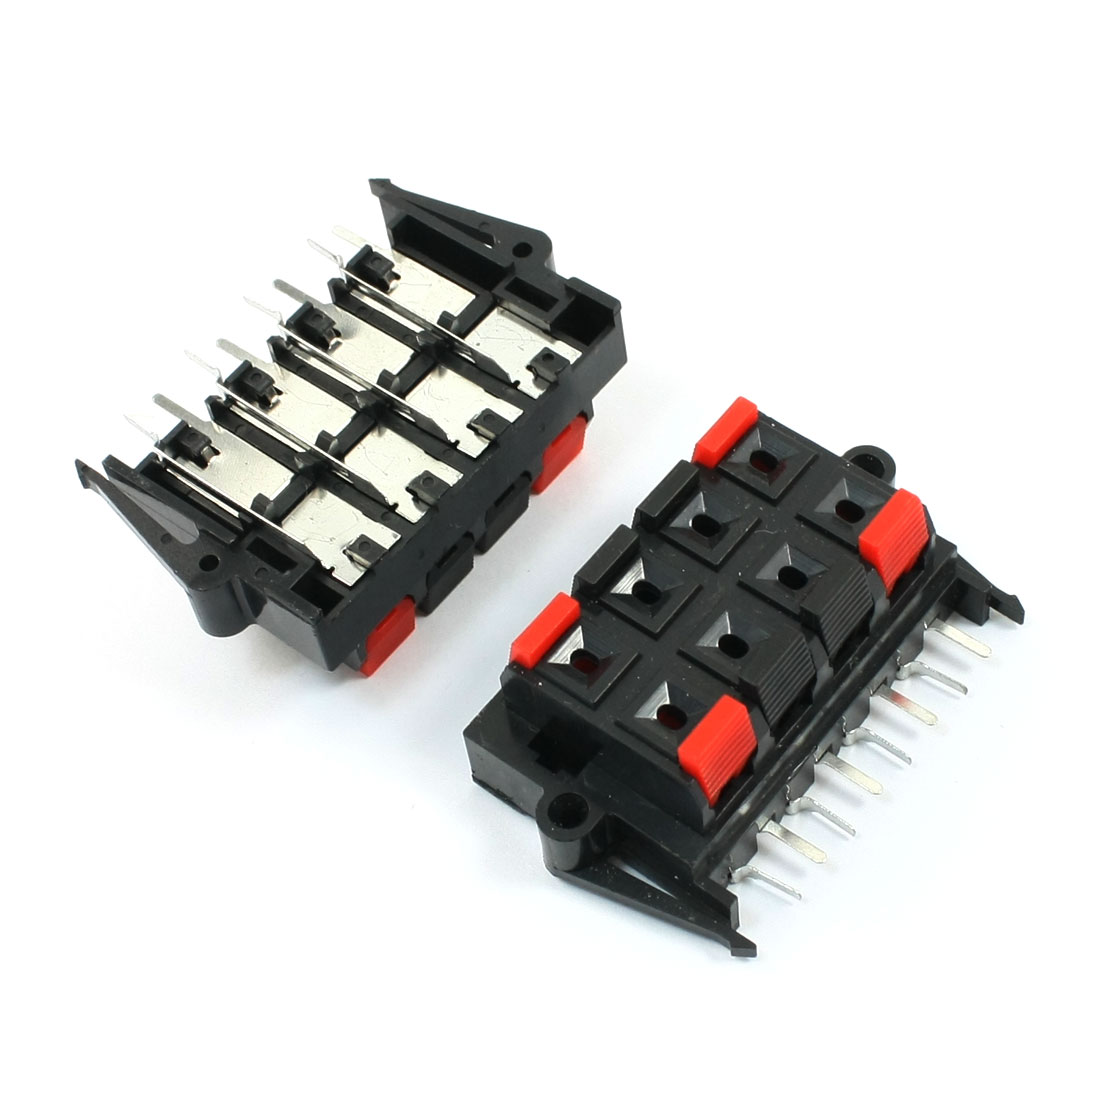 2pcs Red Black 8 Way Push Speaker Terminals Plate Release Connector 64x40mm